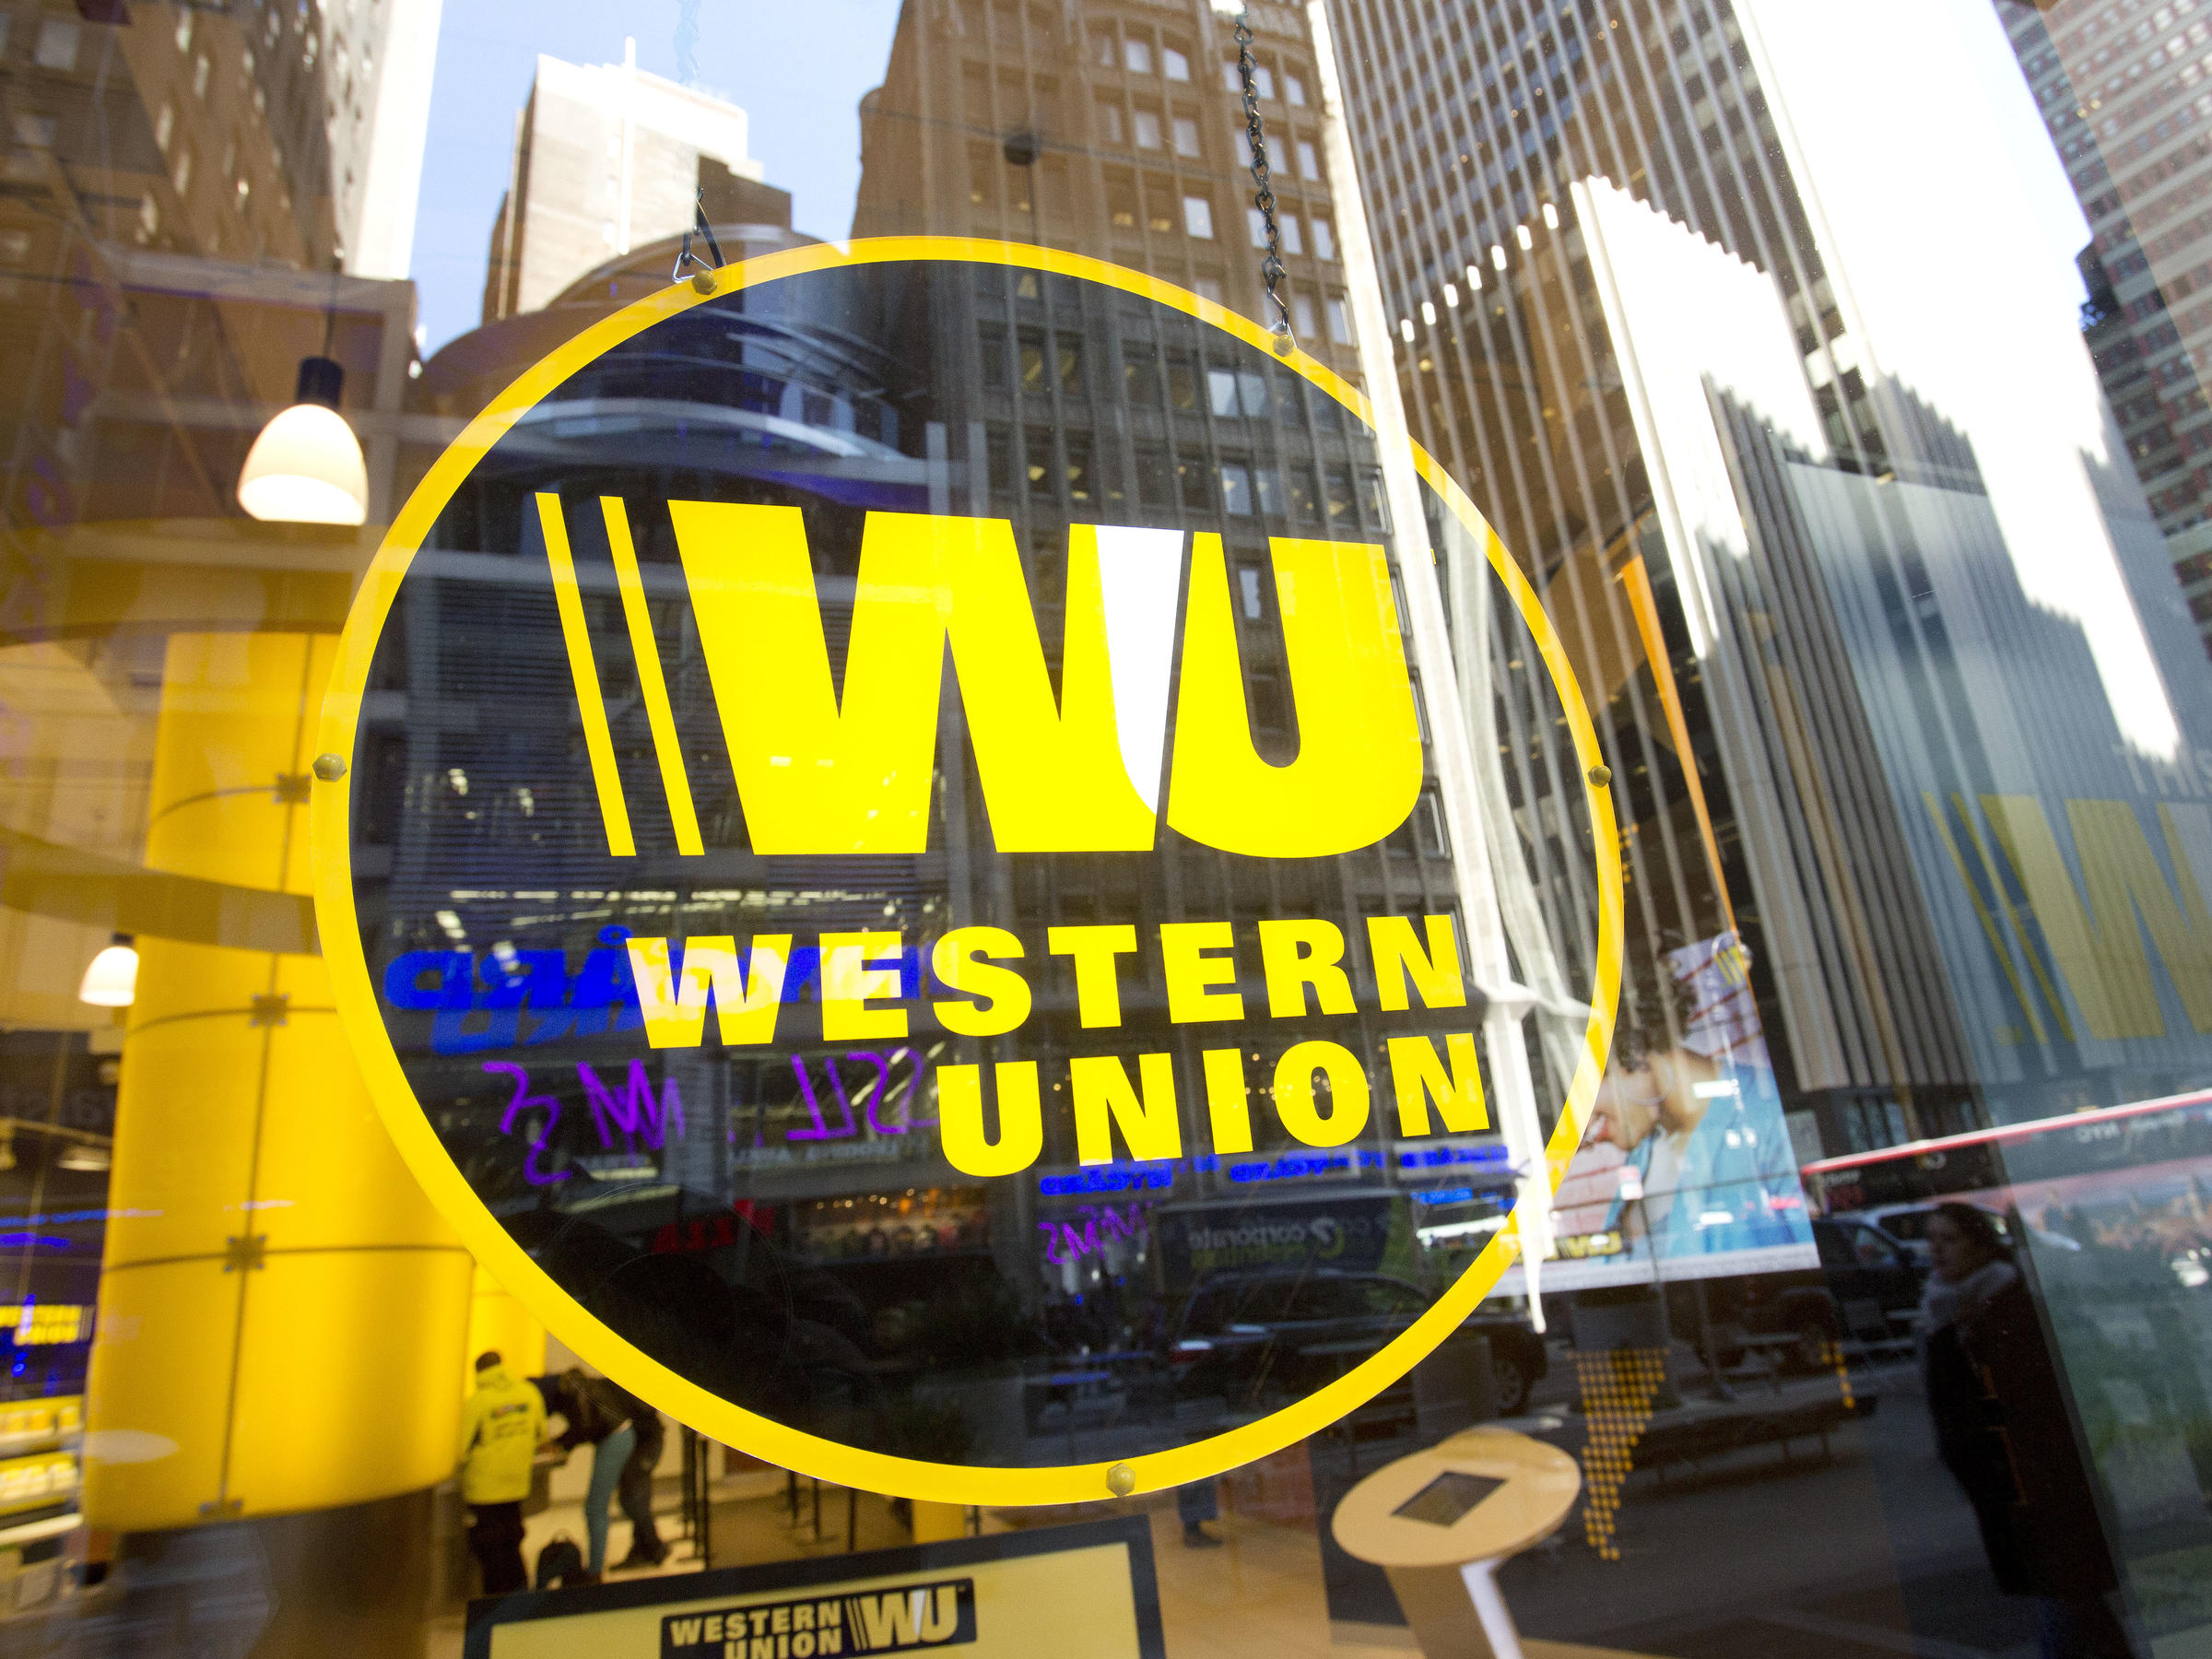 western union will pay 586 million for aiding in wire fraud other violations kuow news and. Black Bedroom Furniture Sets. Home Design Ideas